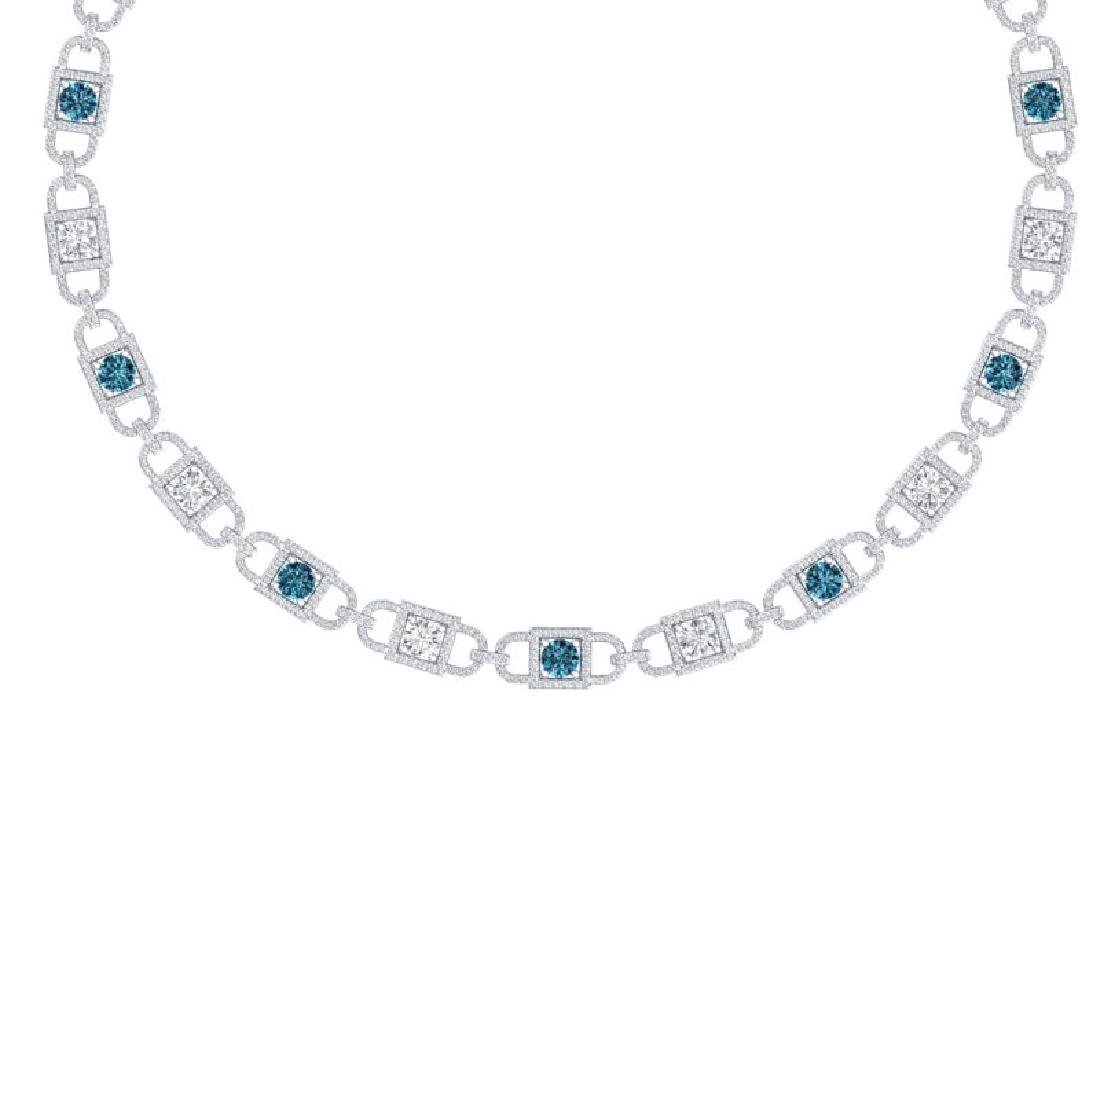 20 CTW SI/I Intense Blue And White Diamond Necklace 18K